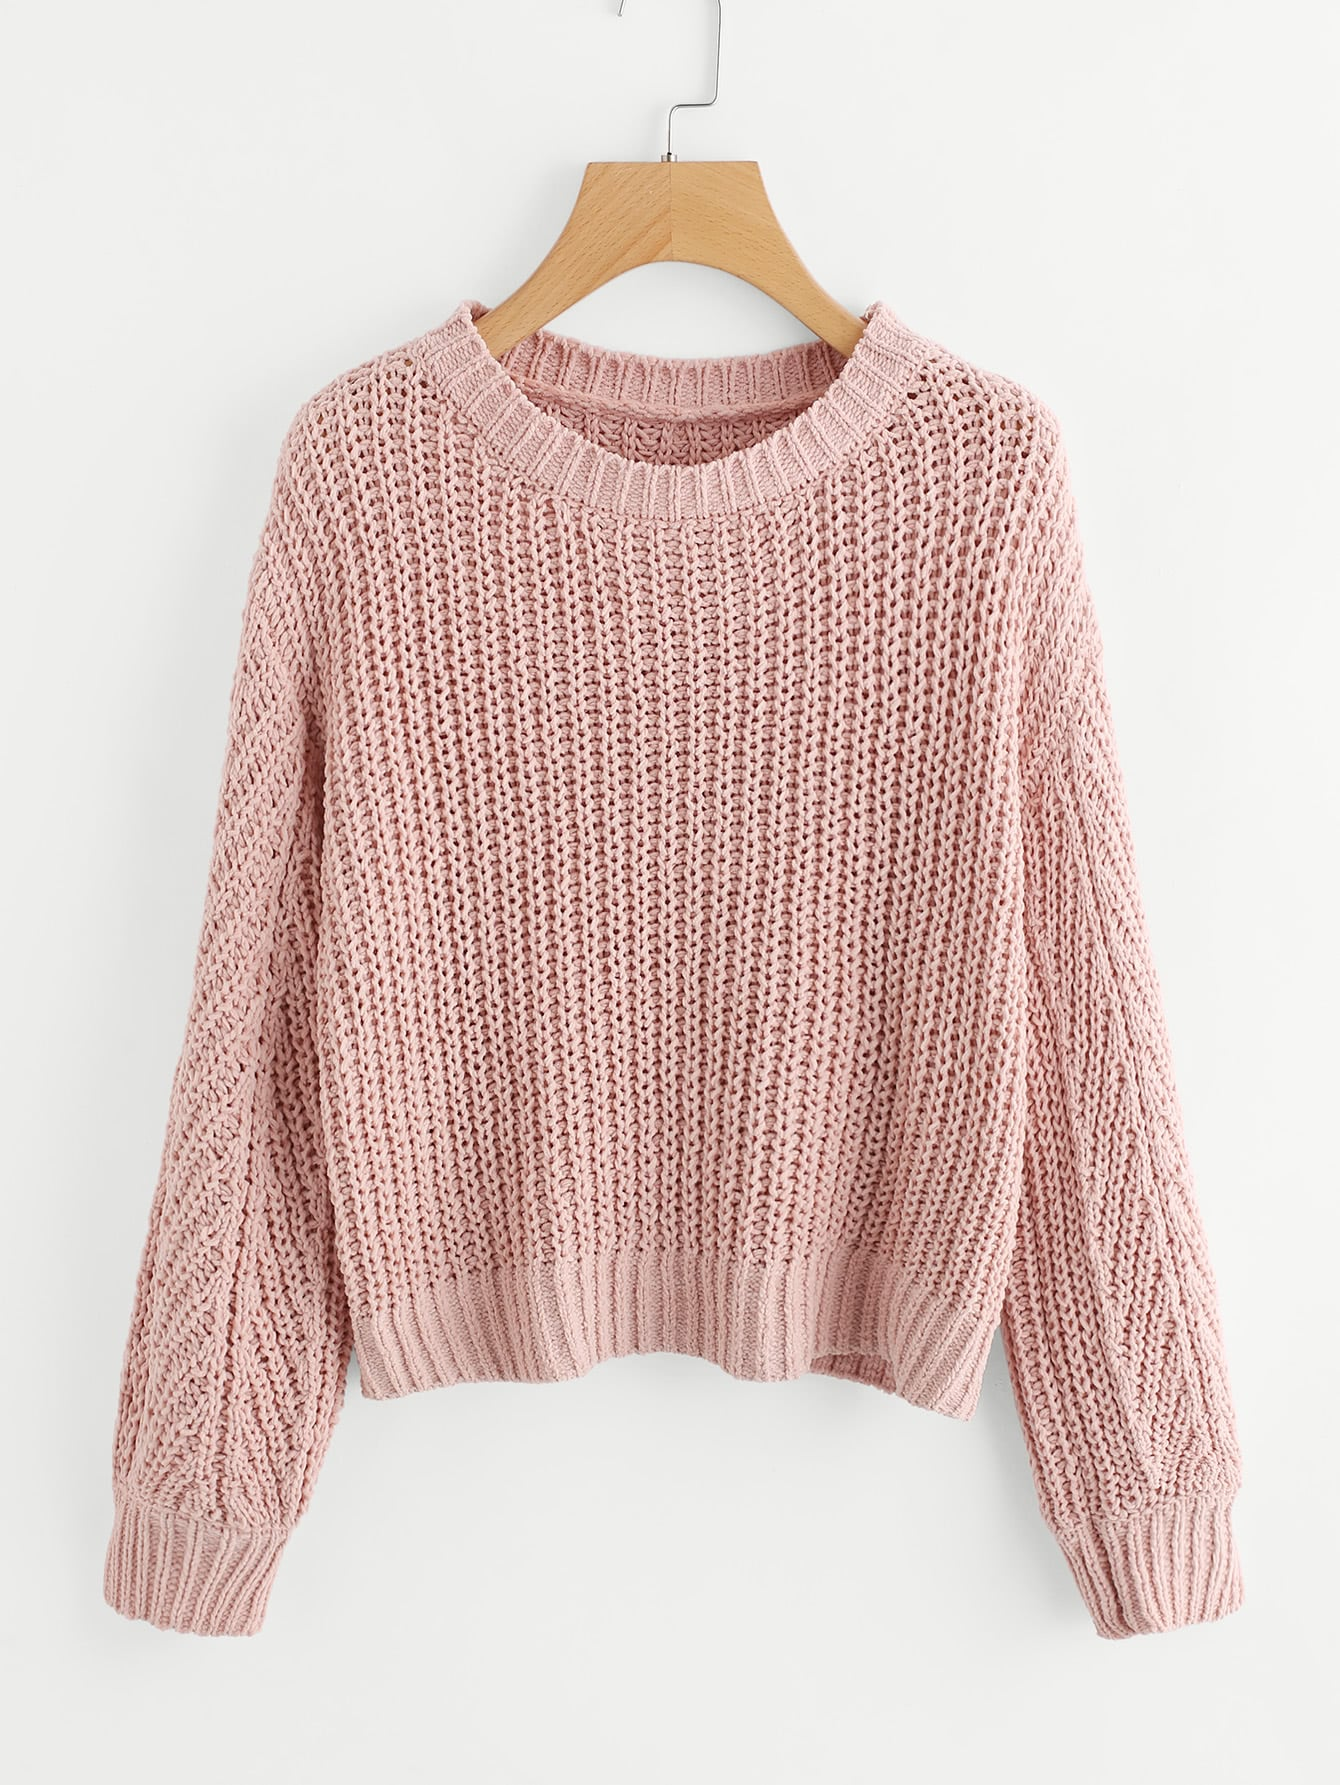 Texture Knit Pullover Sweater -SheIn(Sheinside)